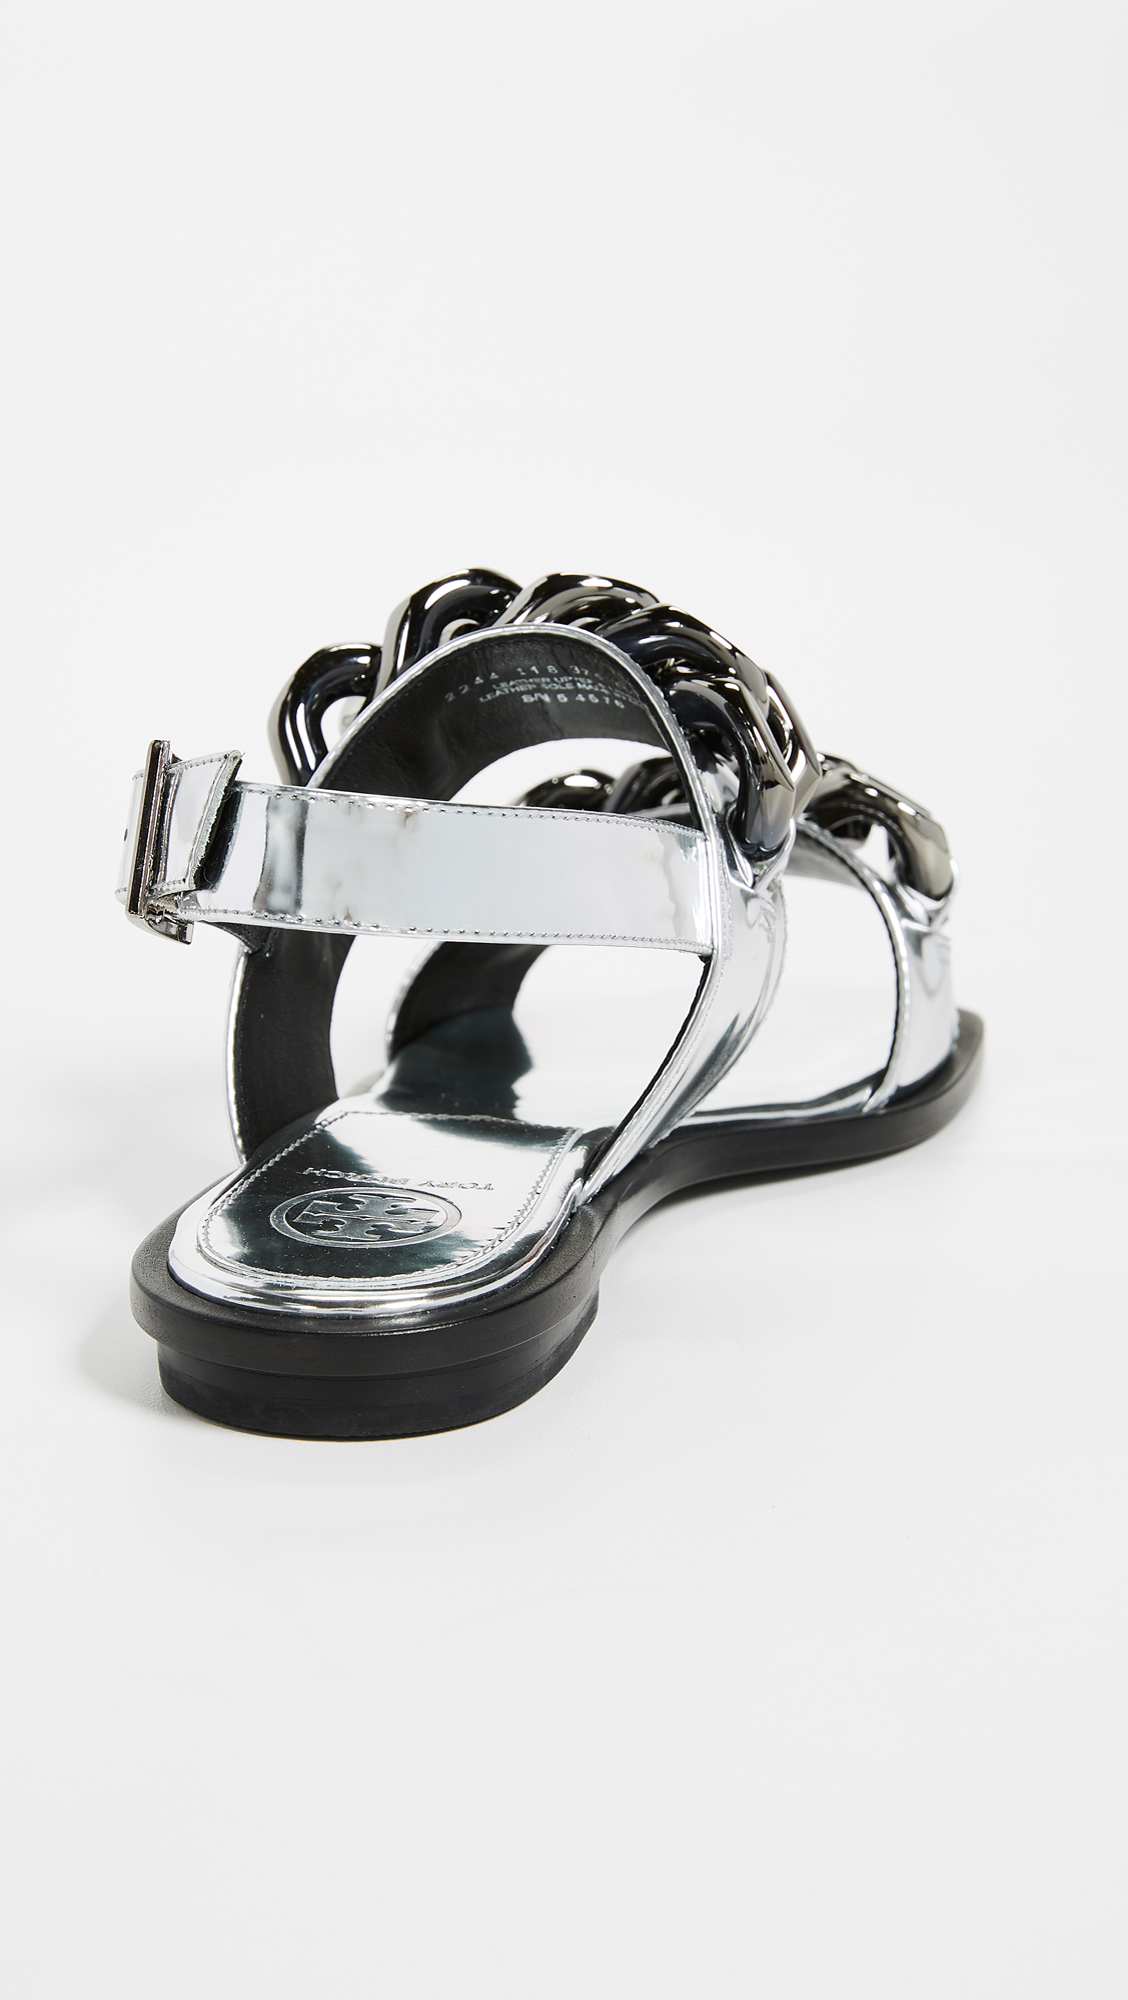 240b8d35dc0 Tory Burch Adrien Sandals